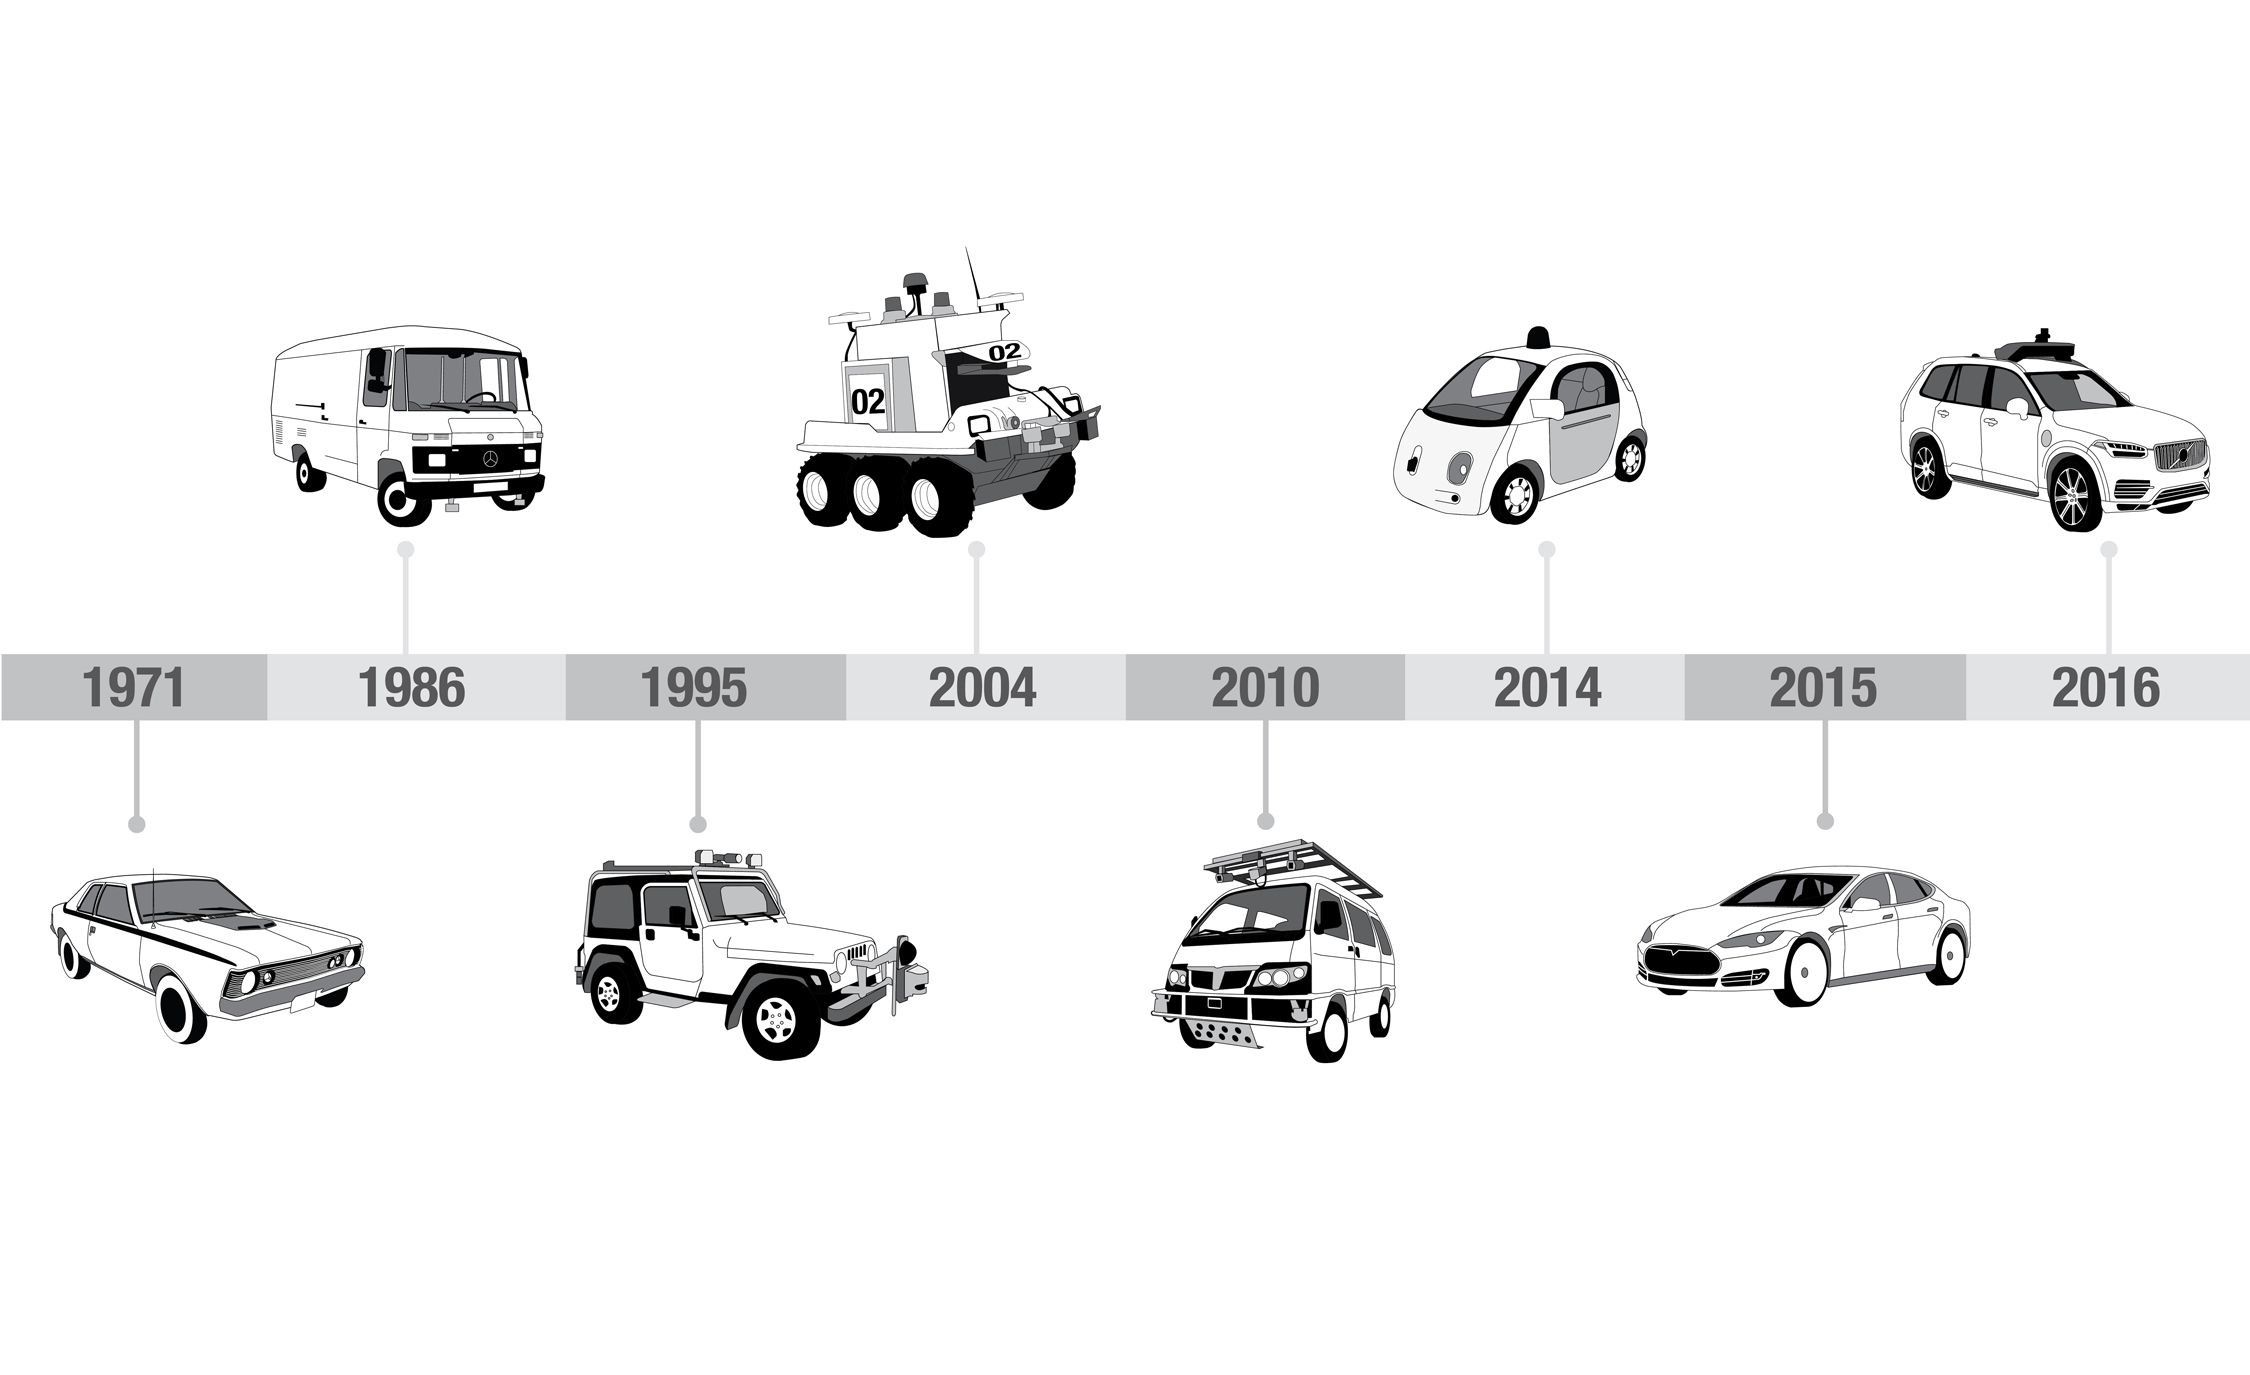 Self Driving Cars Have Actually Been Around For A While